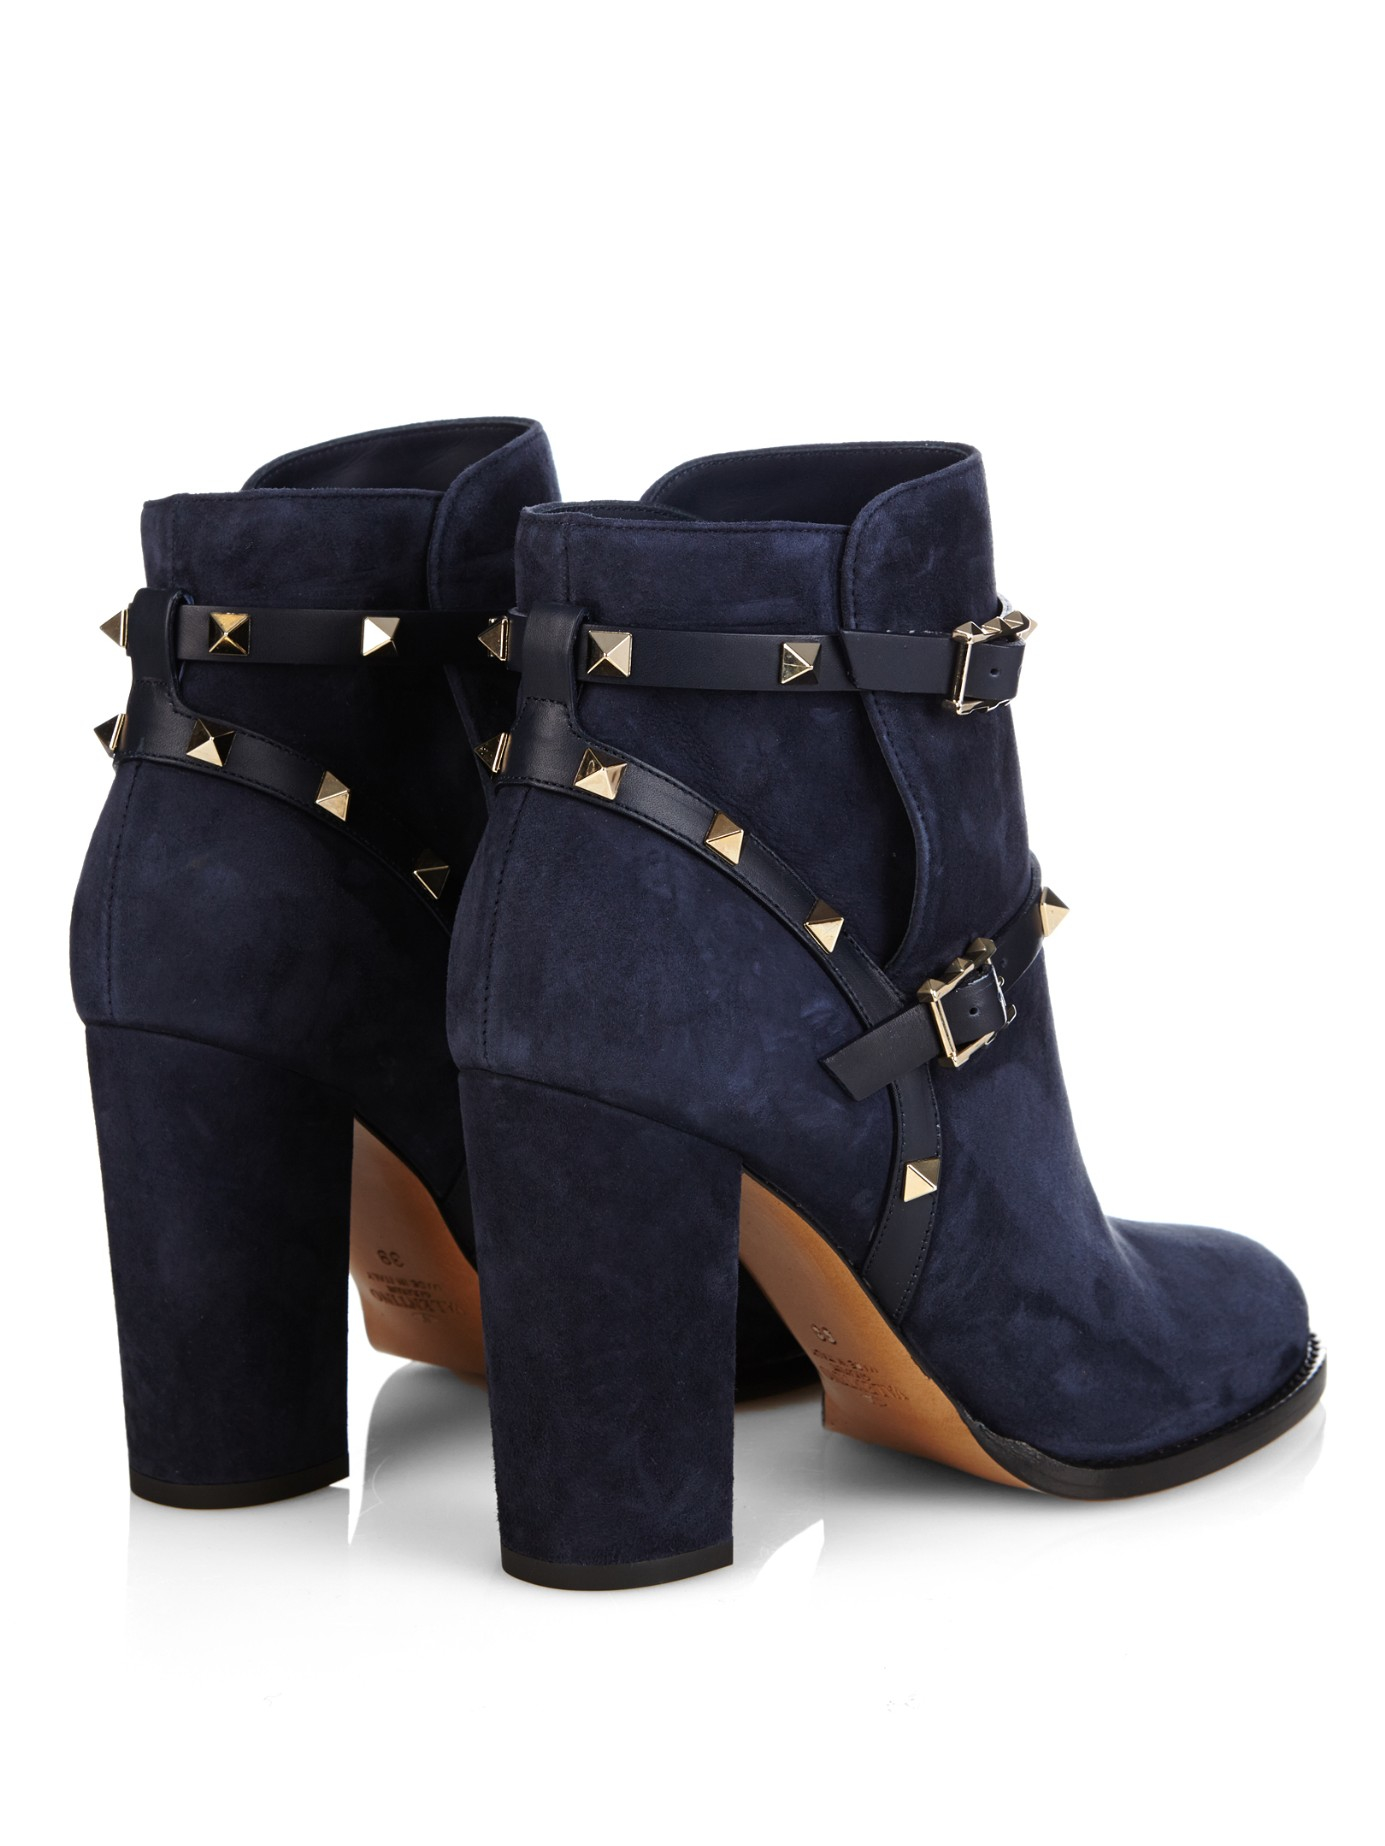 Valentino Rockstud Suede Ankle Boots in Blue | Lyst